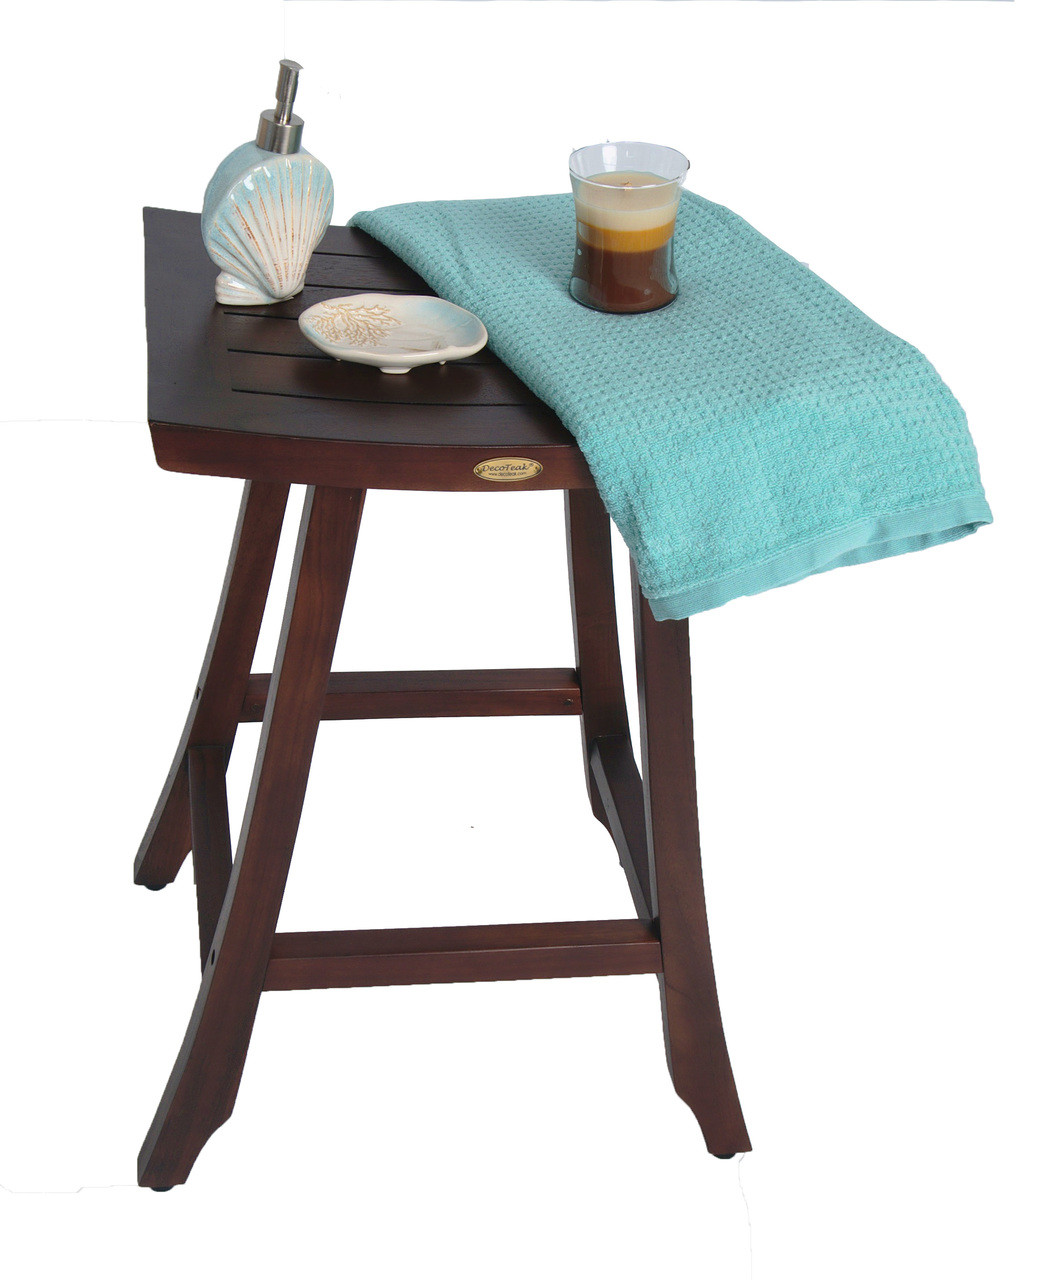 Satori™ Indoor Outdoor Teak Bar Stool - 30 inch Height